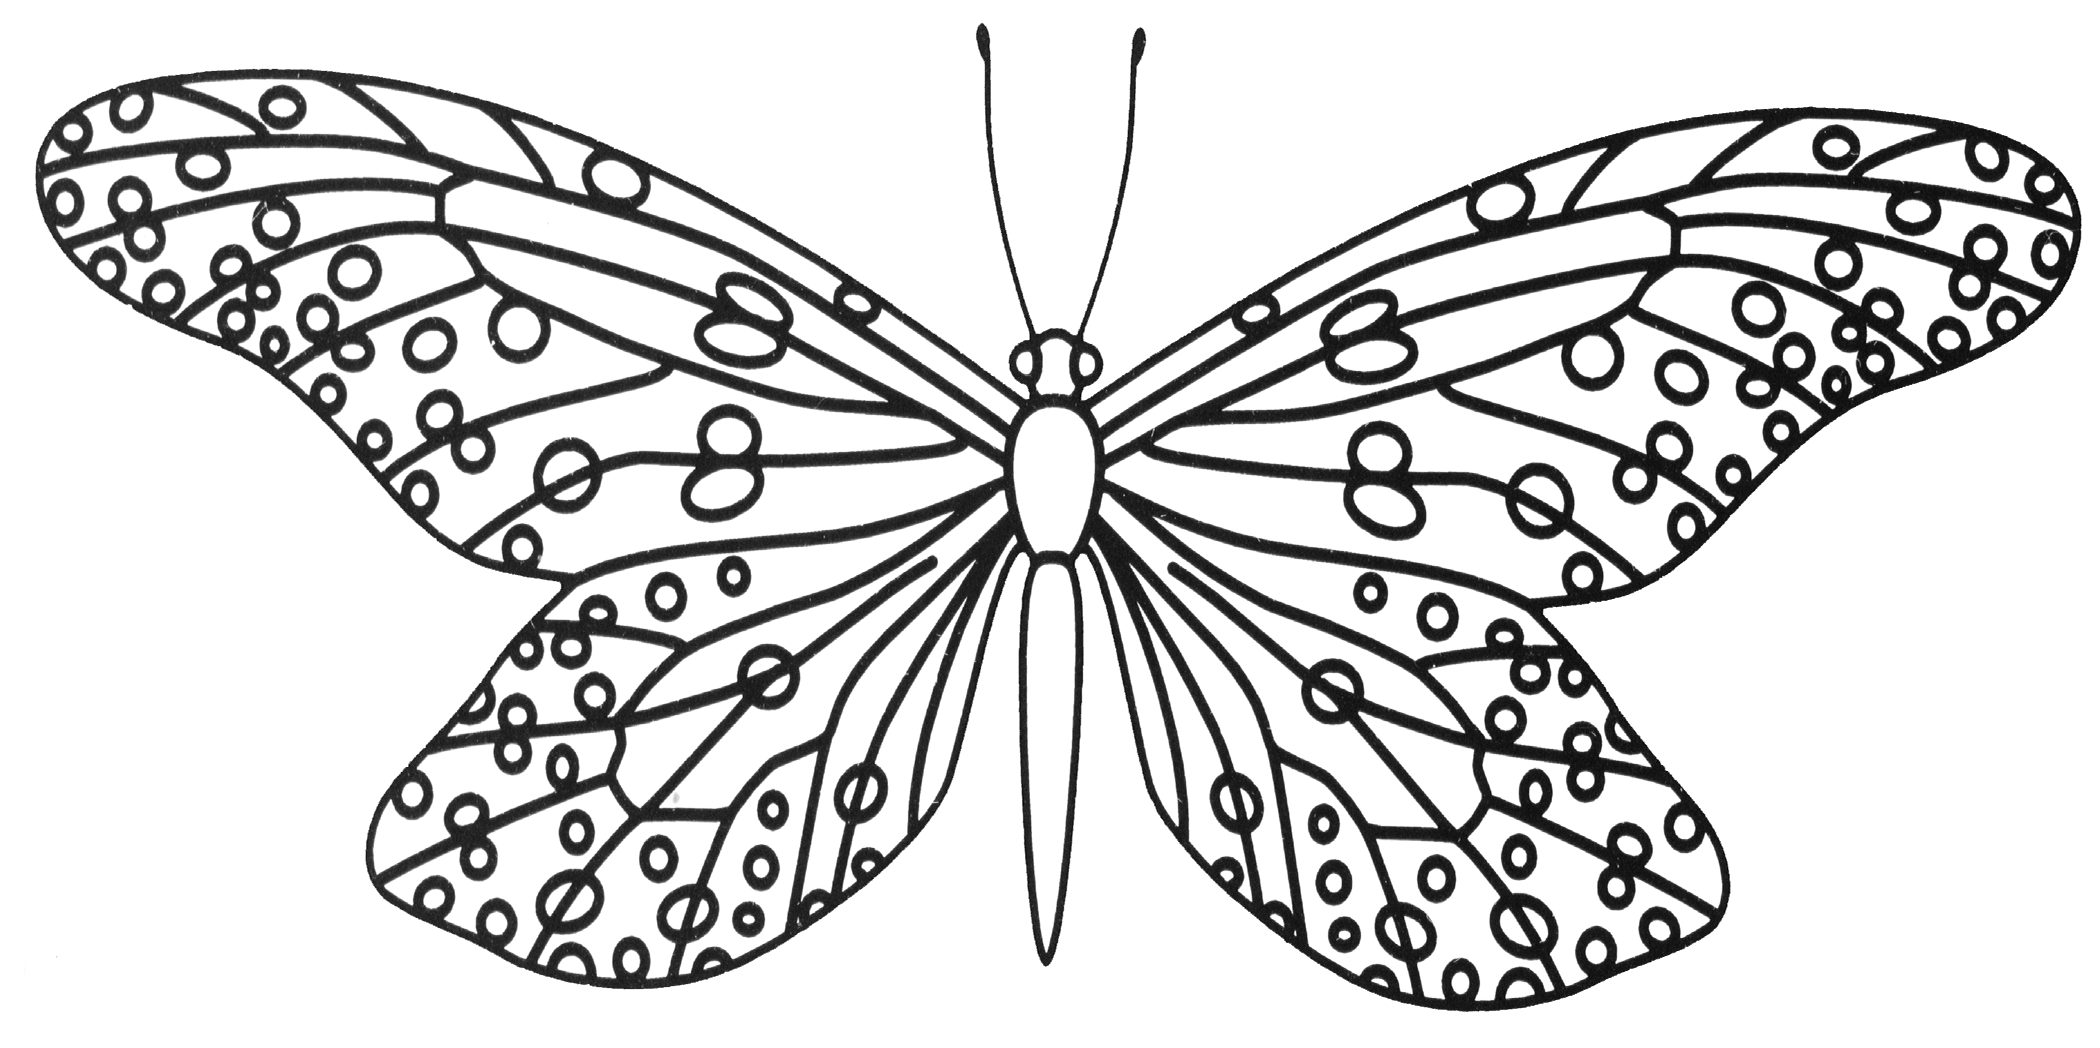 2100x1048 Zentangle Flowers Coloring Pages Zentangle Flowers Coloring Pages